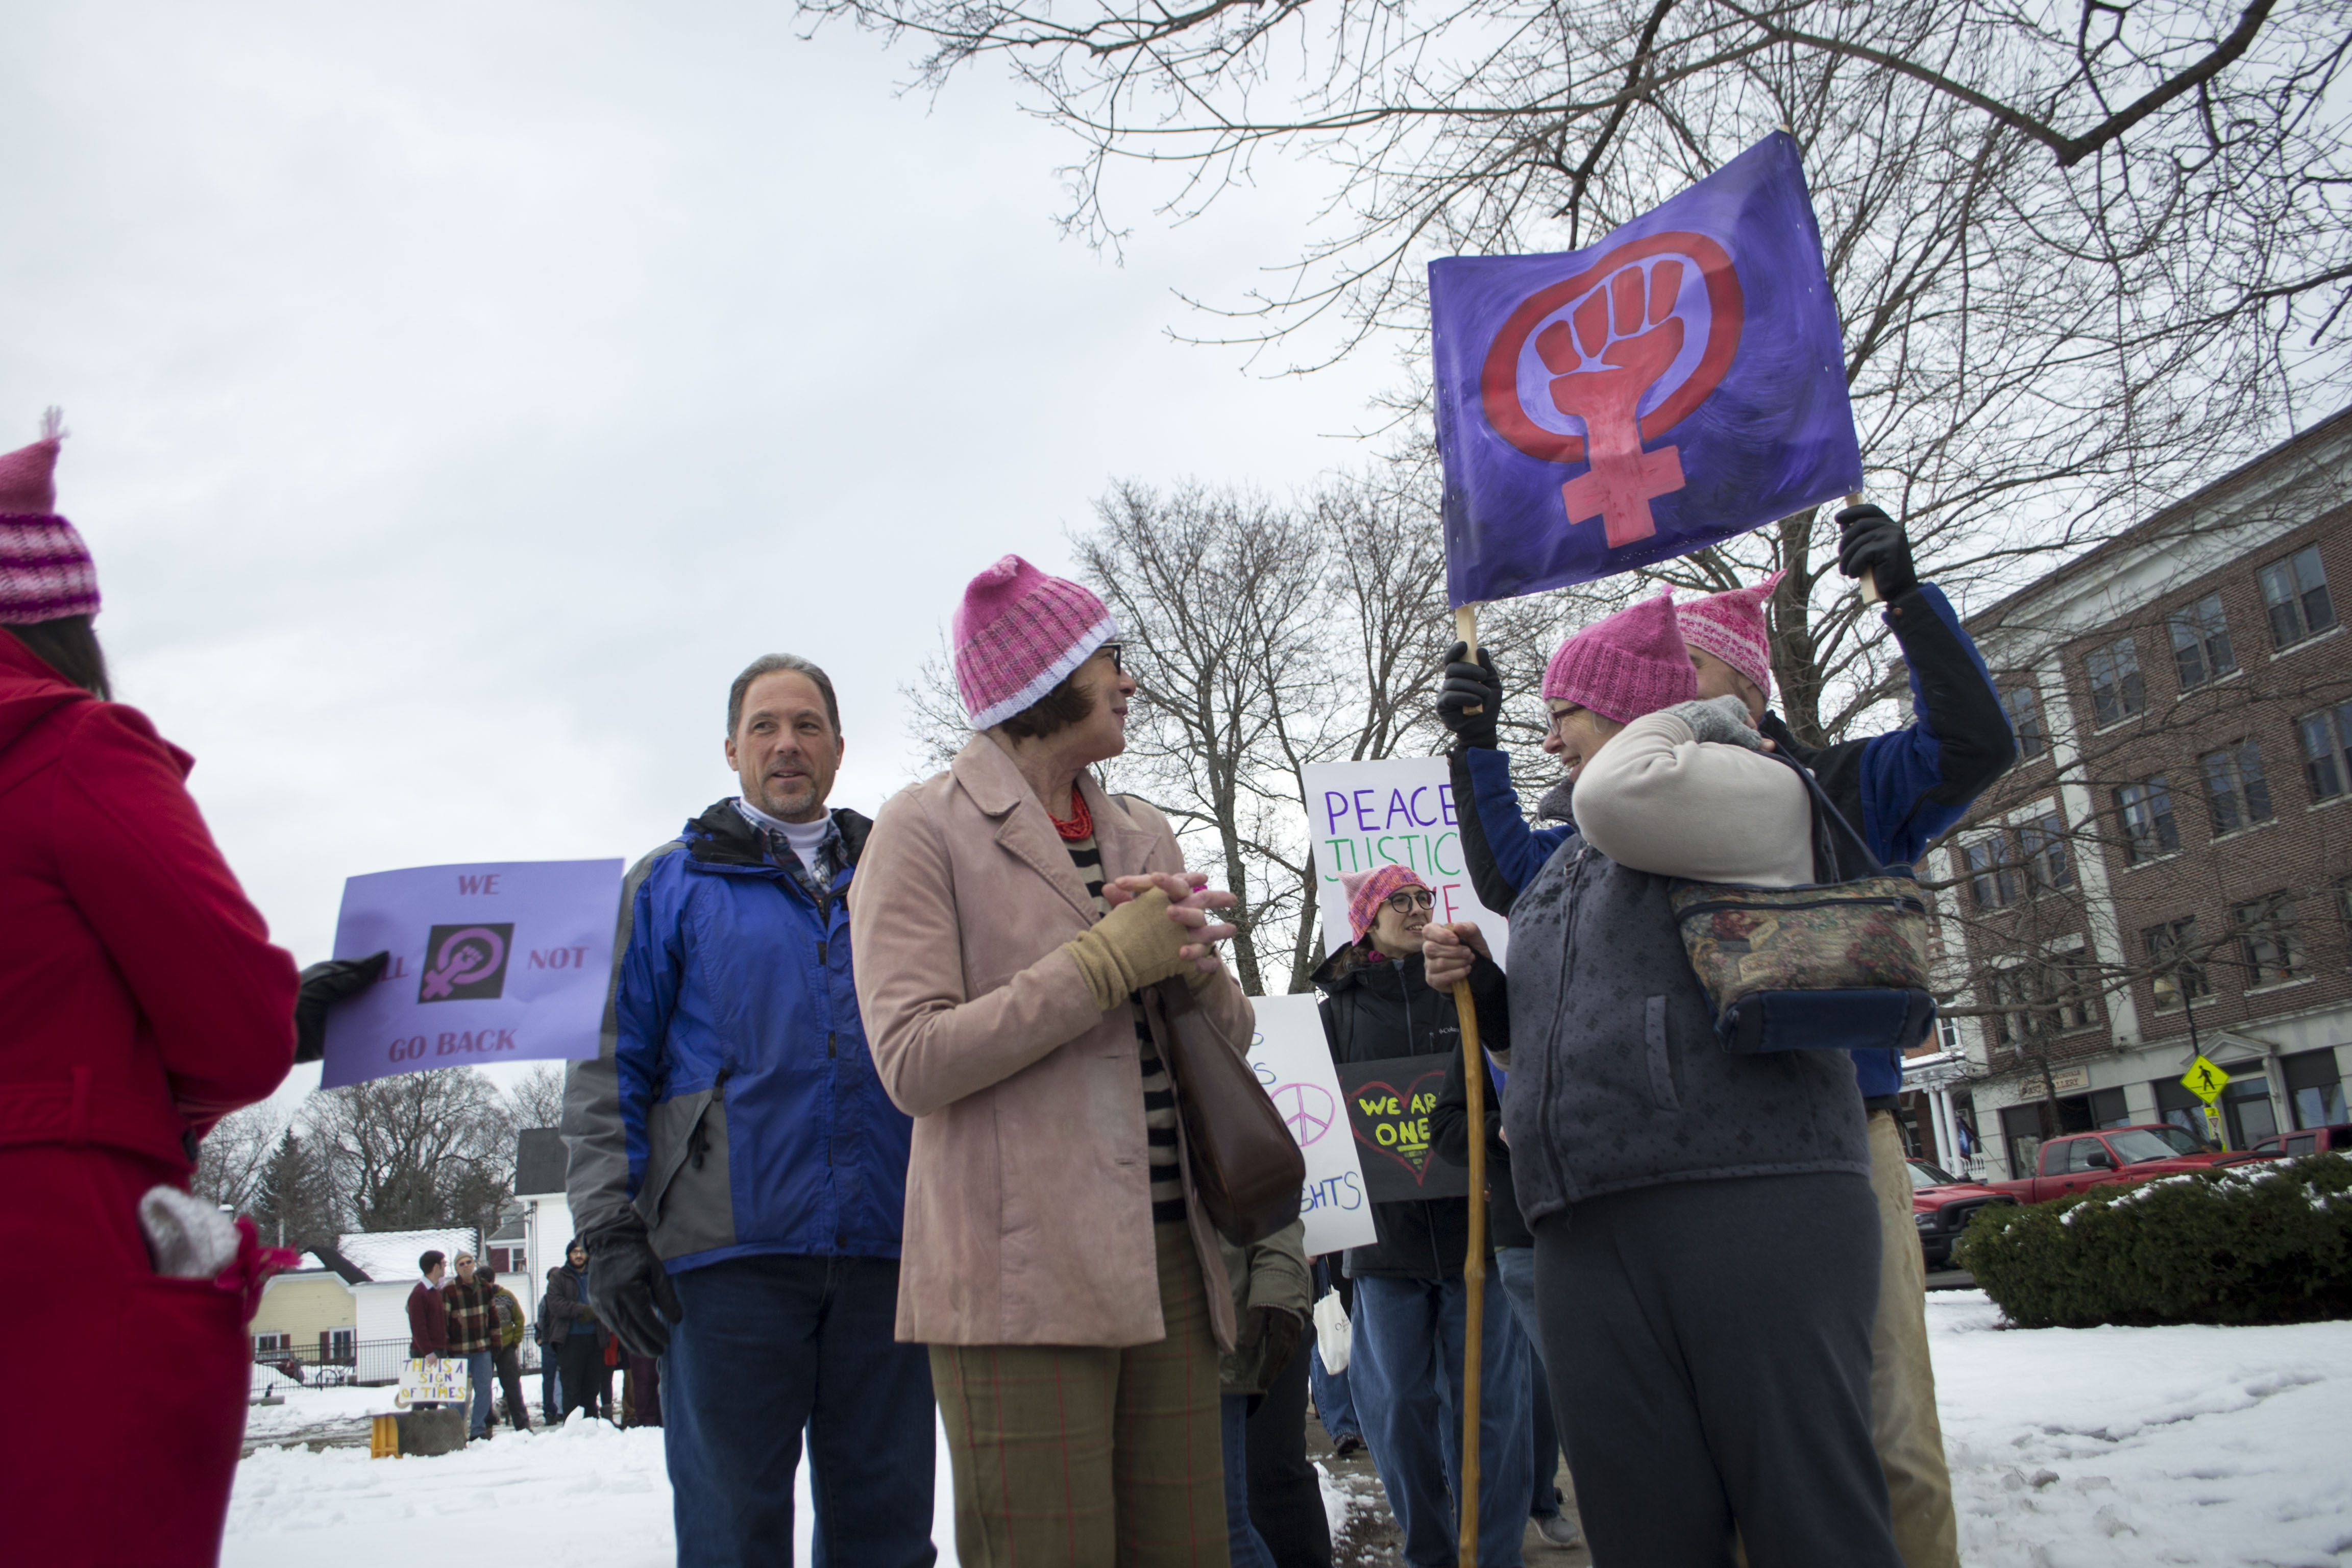 Marchers begin their stroll down Main Street from Central Park during the Women's March on Maine held in Sanford on Saturday. ALAN BENNETT/Journal Tribune